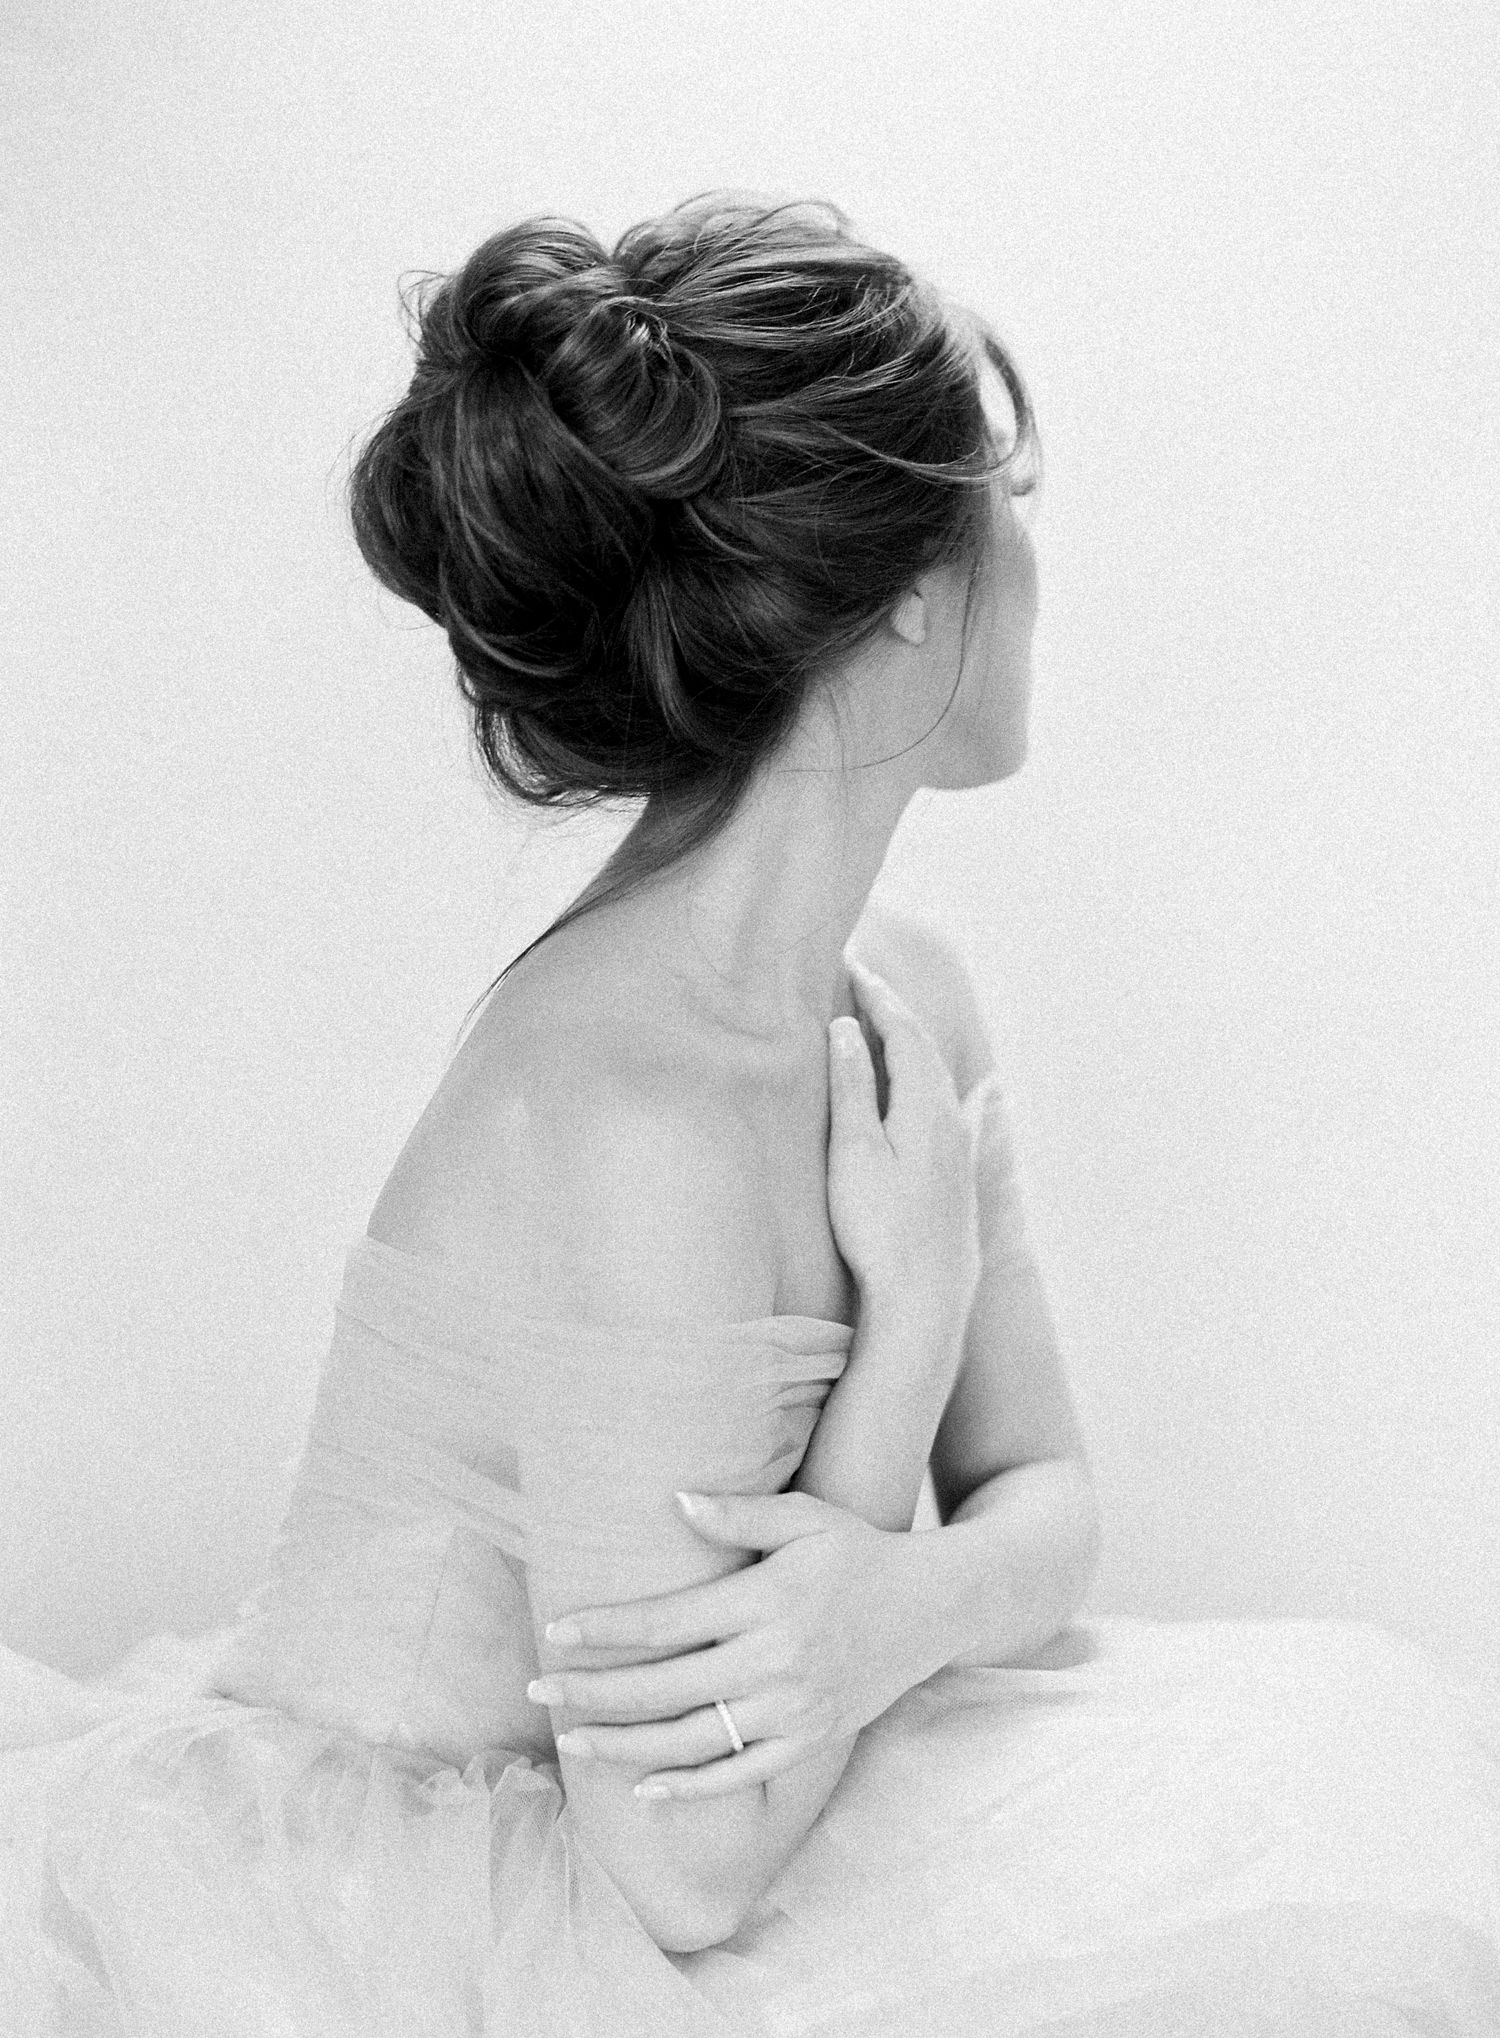 Bridal Style | Gown, Veil, Hair, Makeup, and Accessory Inspiration: Beautiful Portraits and Intimate Moments | Jen Huang #bridalportraitposes